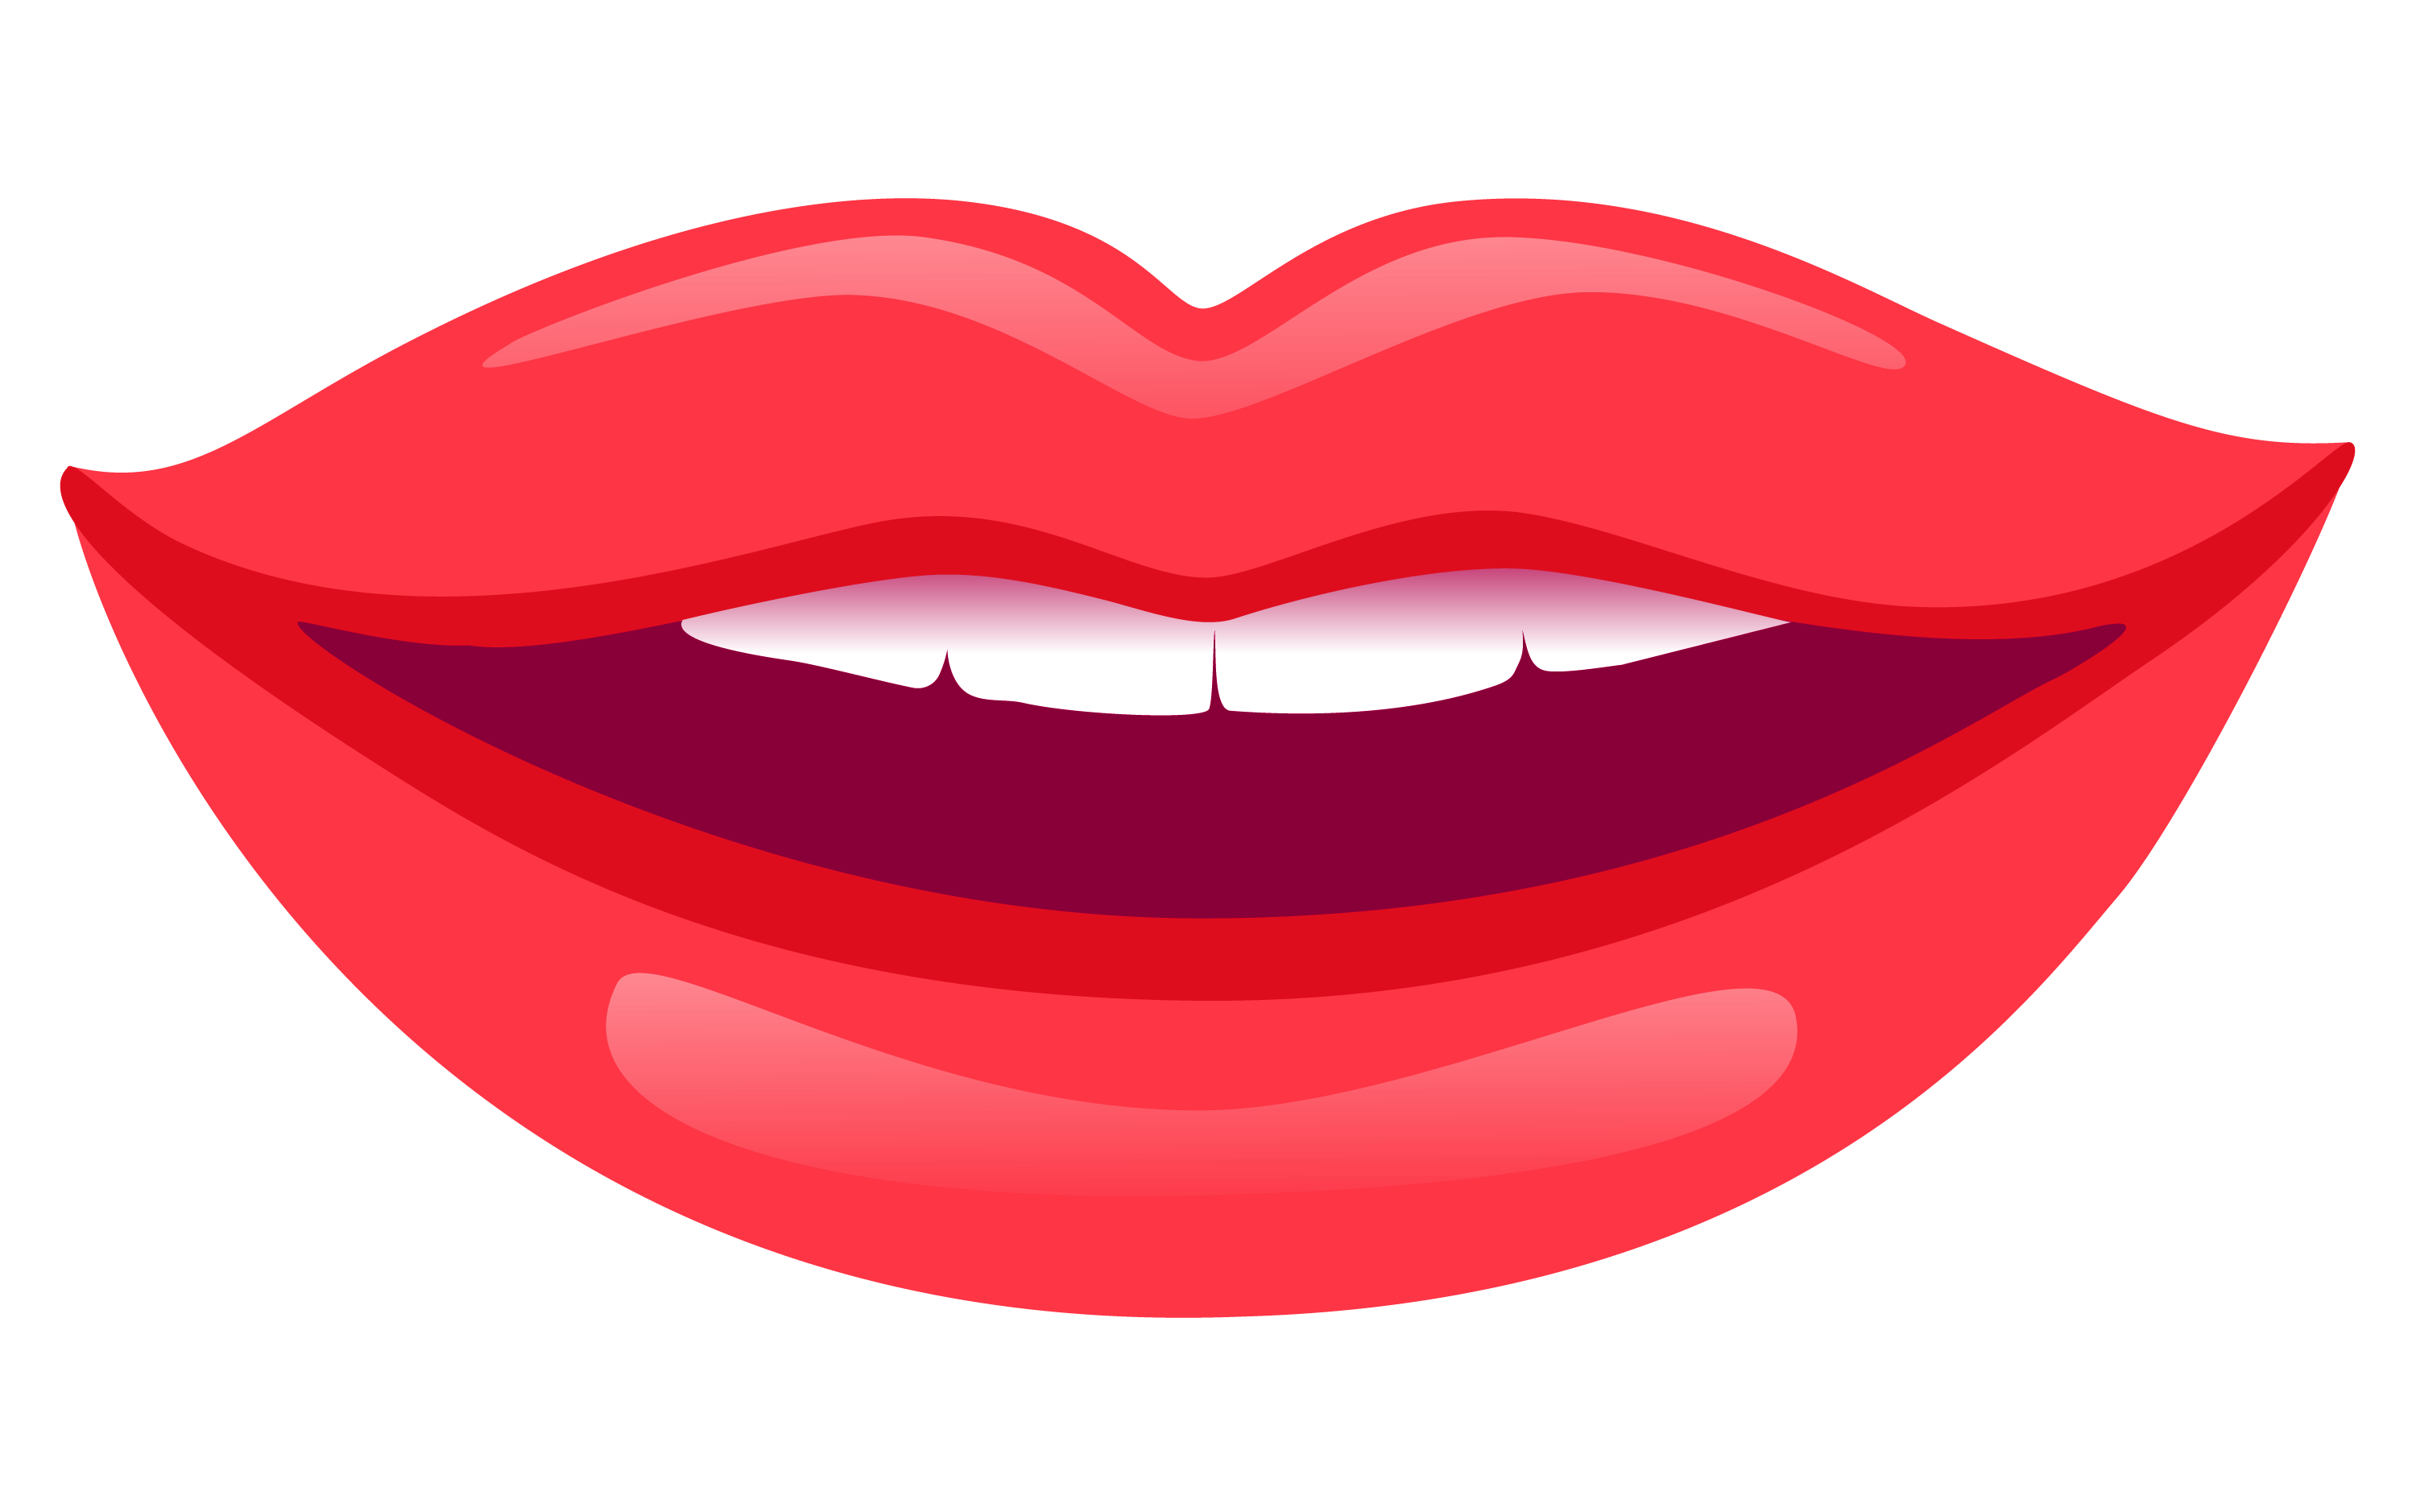 Smile Lips PNG Transparent Smile Lips.PNG Images.